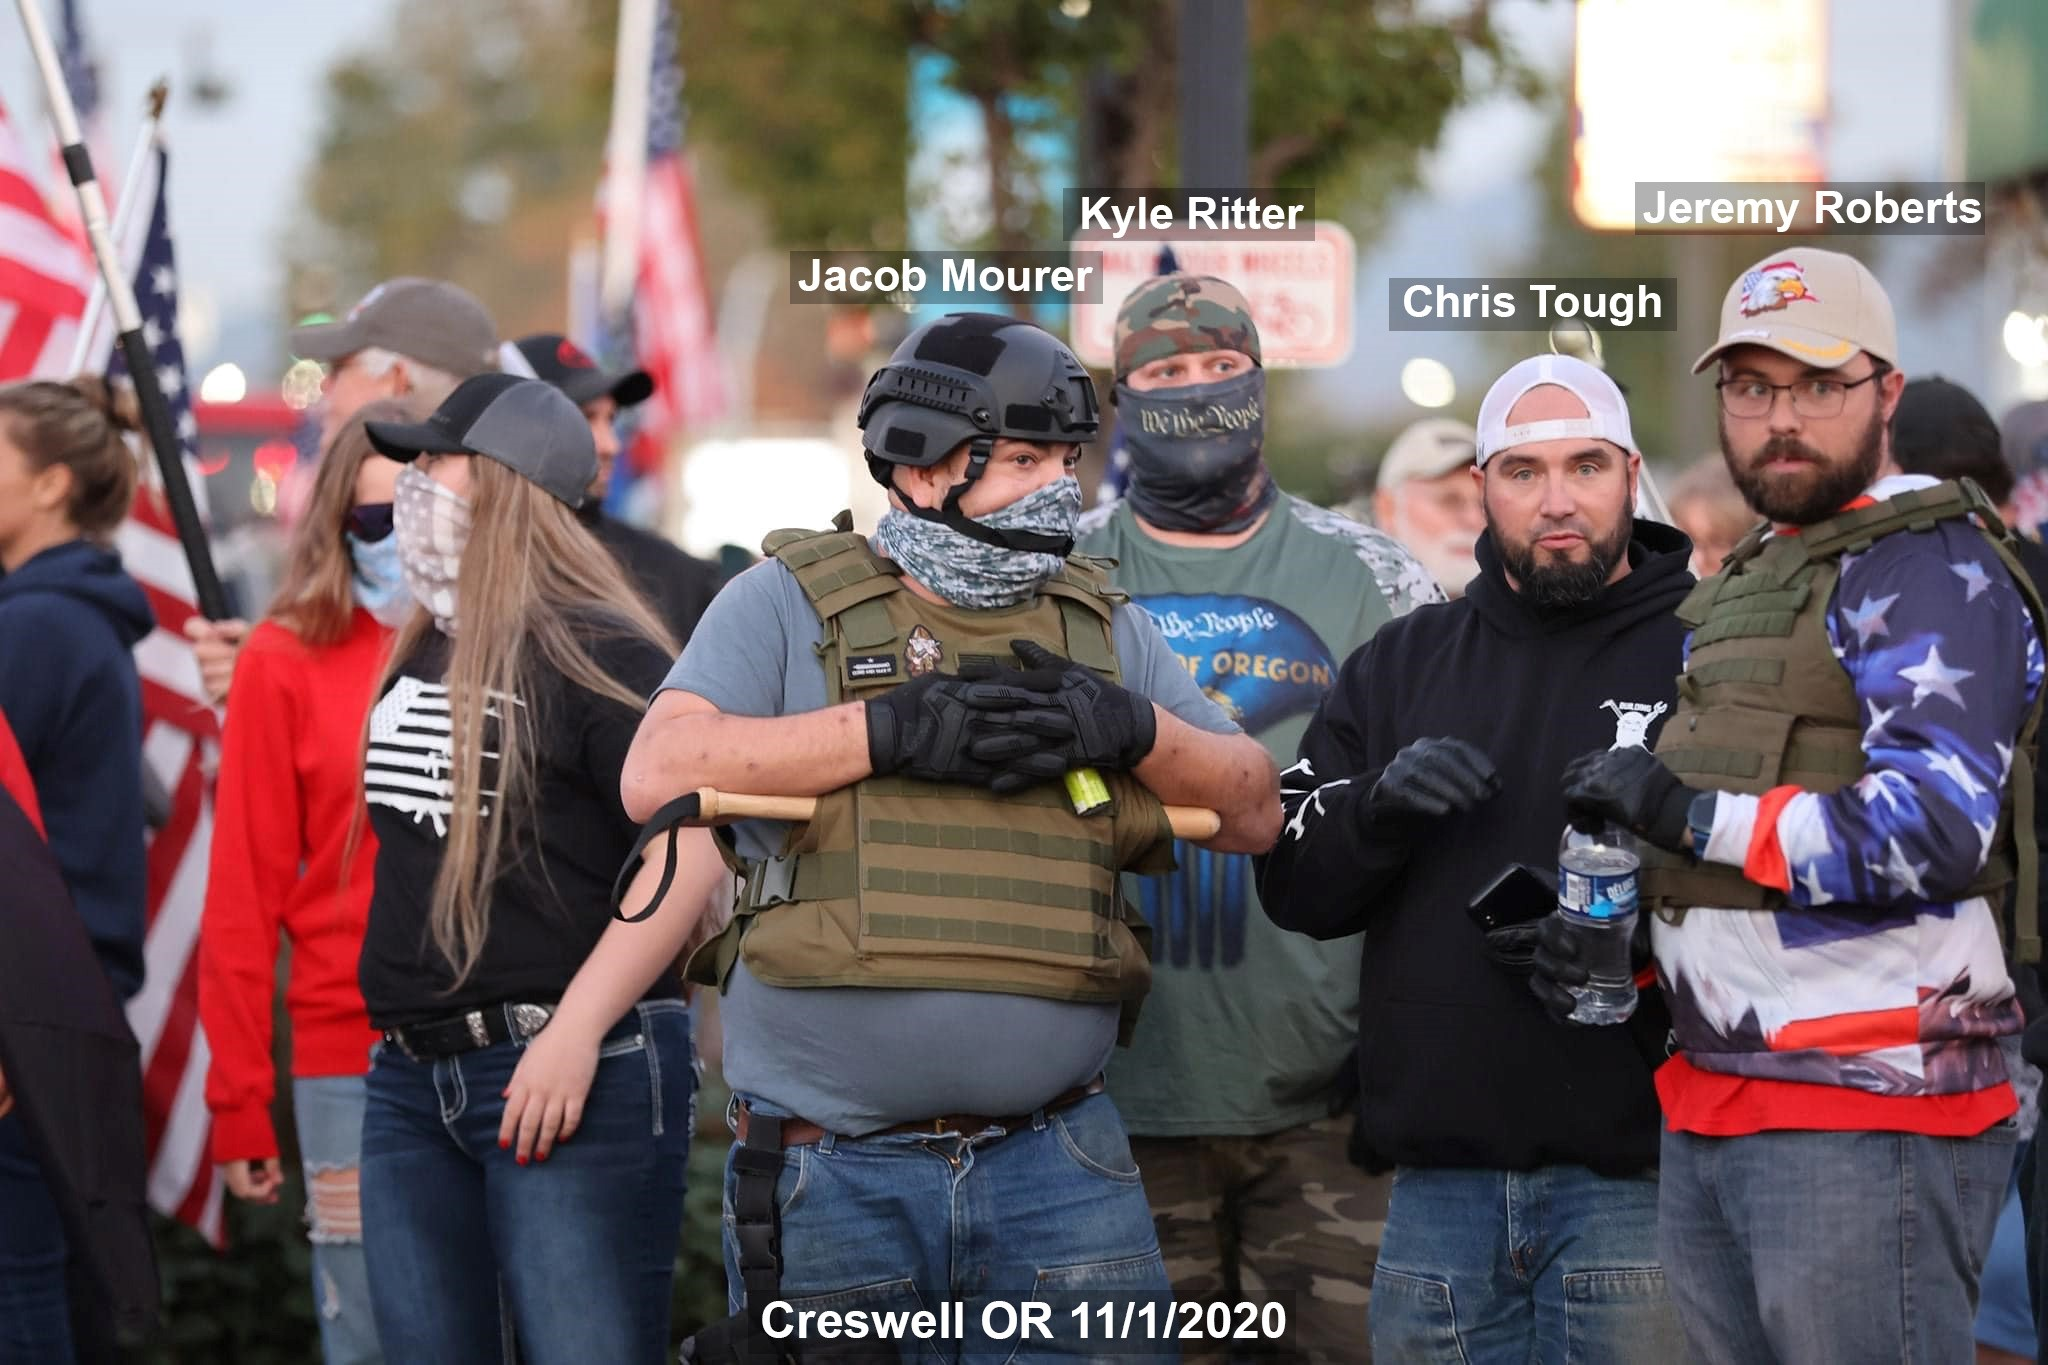 Jacob Mourer at an anti-BLM gathering in Creswell, OR on 11/1/2020